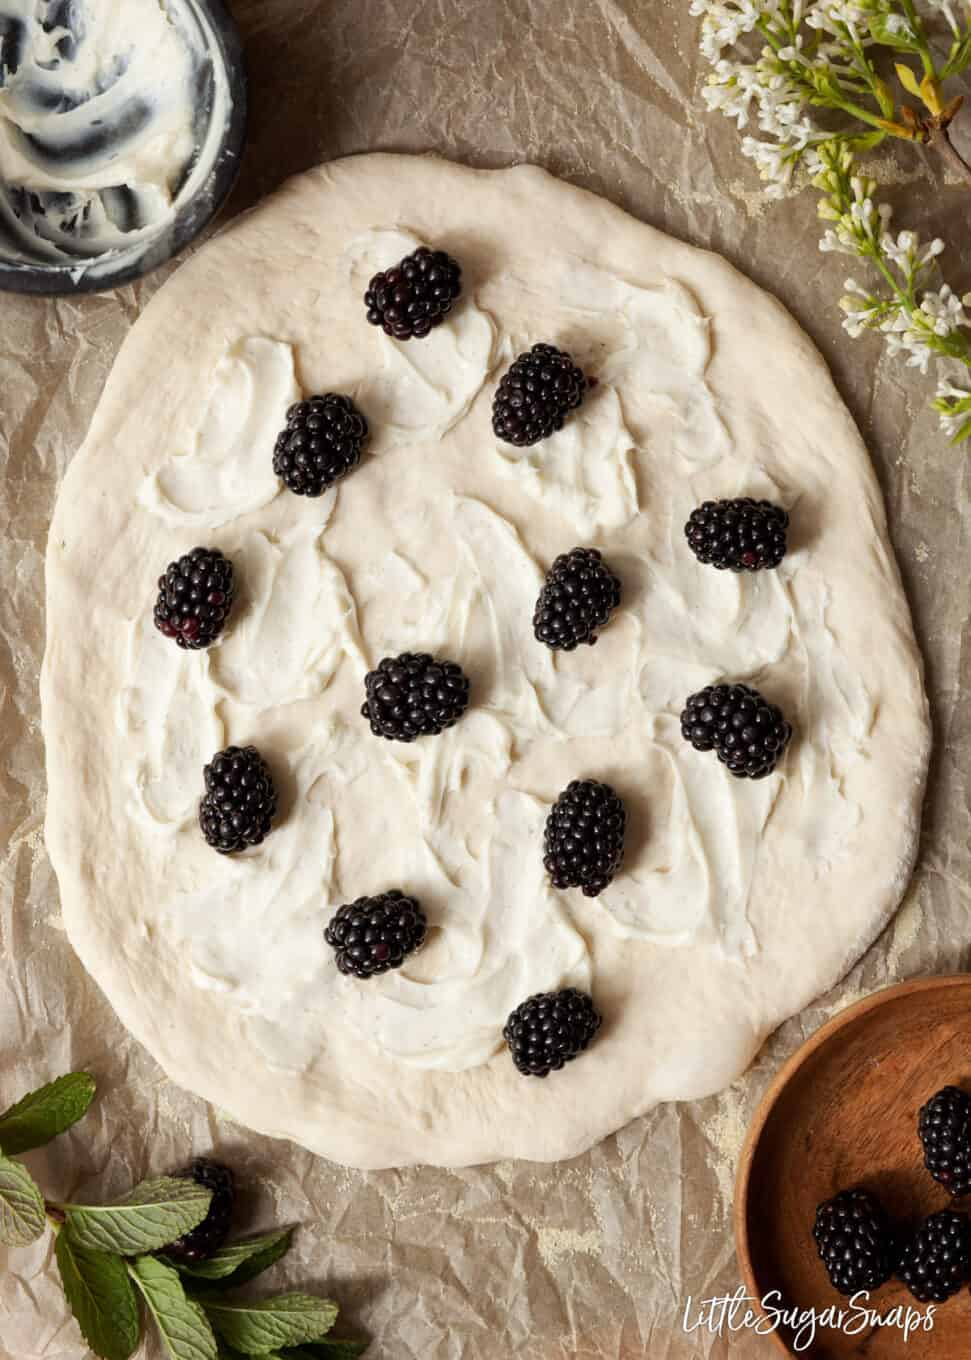 Blackberries scattered onto sweetened mascarpone cheese spread on a pizza base